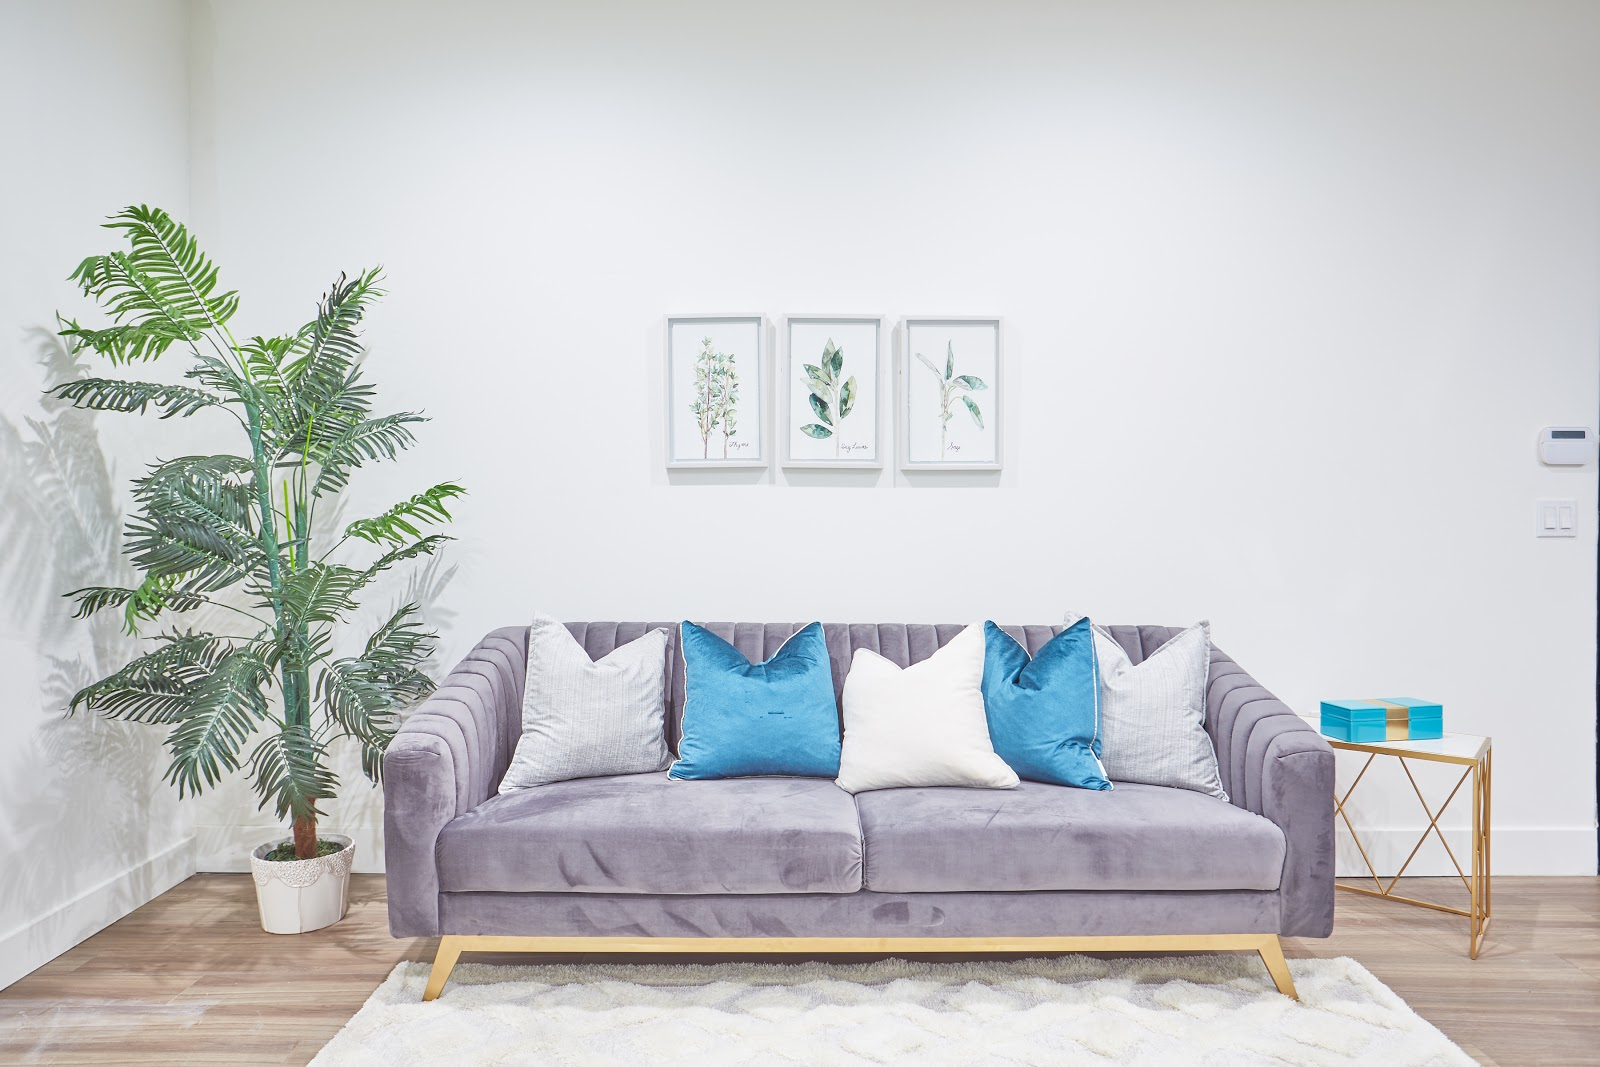 Tripalink model living room with grey and gold couch with green large plant